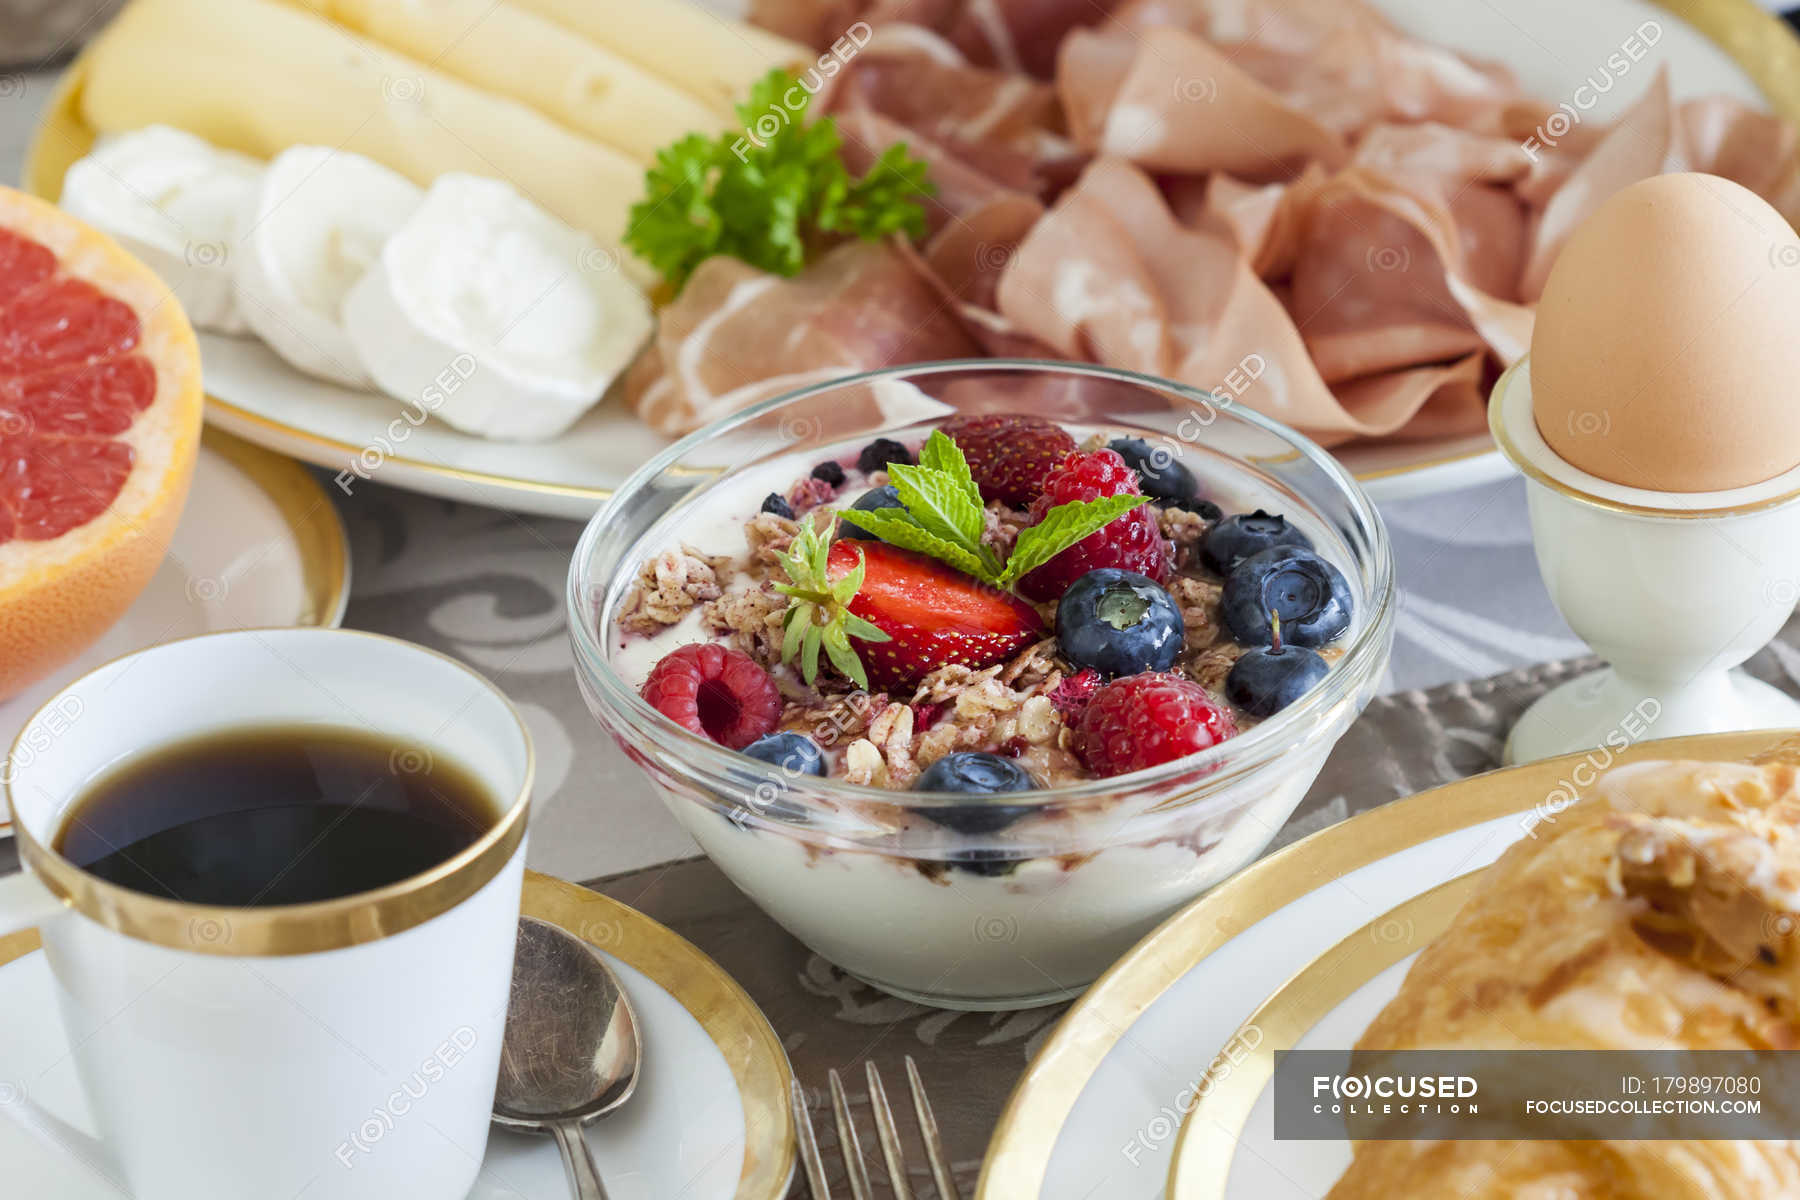 Healthy Breakfast On Table With Bowls And Plates Dishes Fruit Stock Photo 179897080